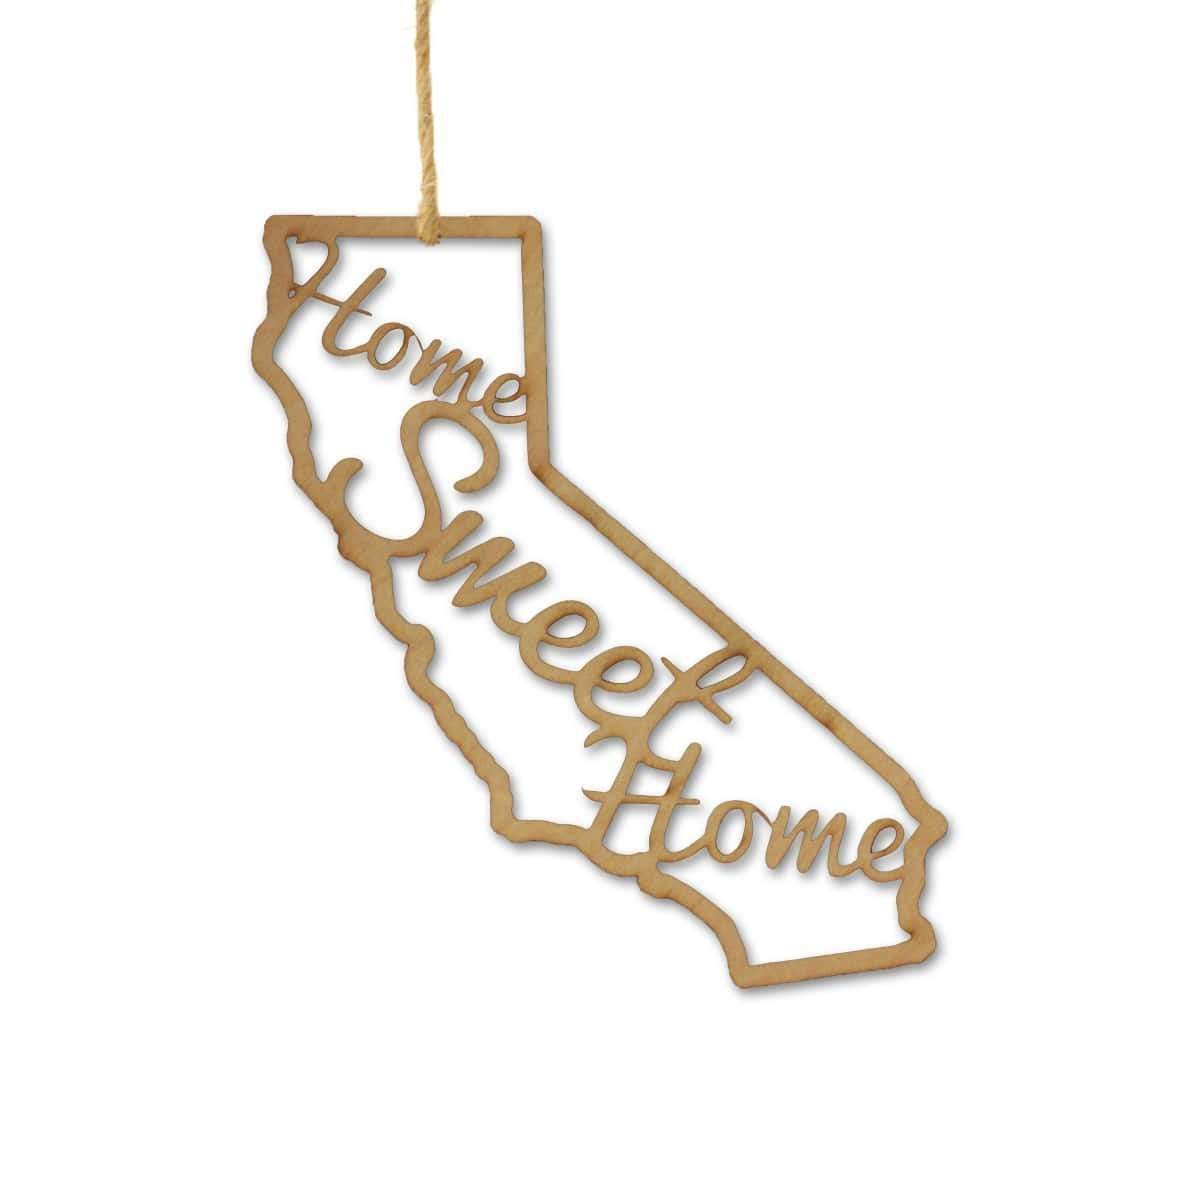 Torched Products Ornaments California Home Sweet Home Ornaments (781211500661)